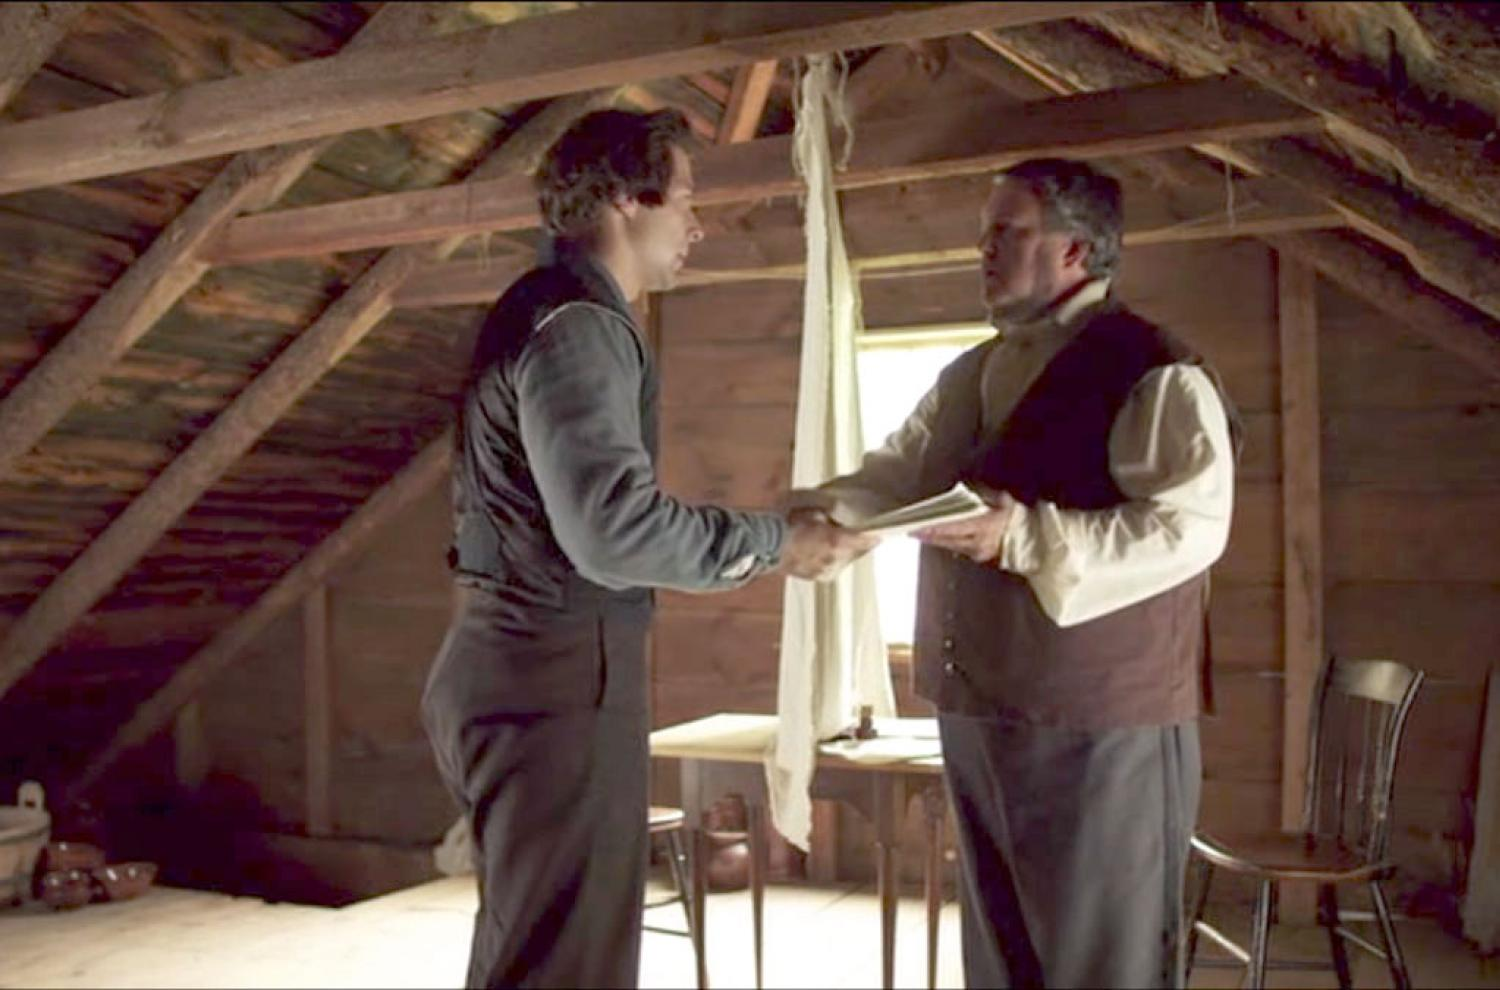 Still Image from Joseph Smith: Plates of Gold